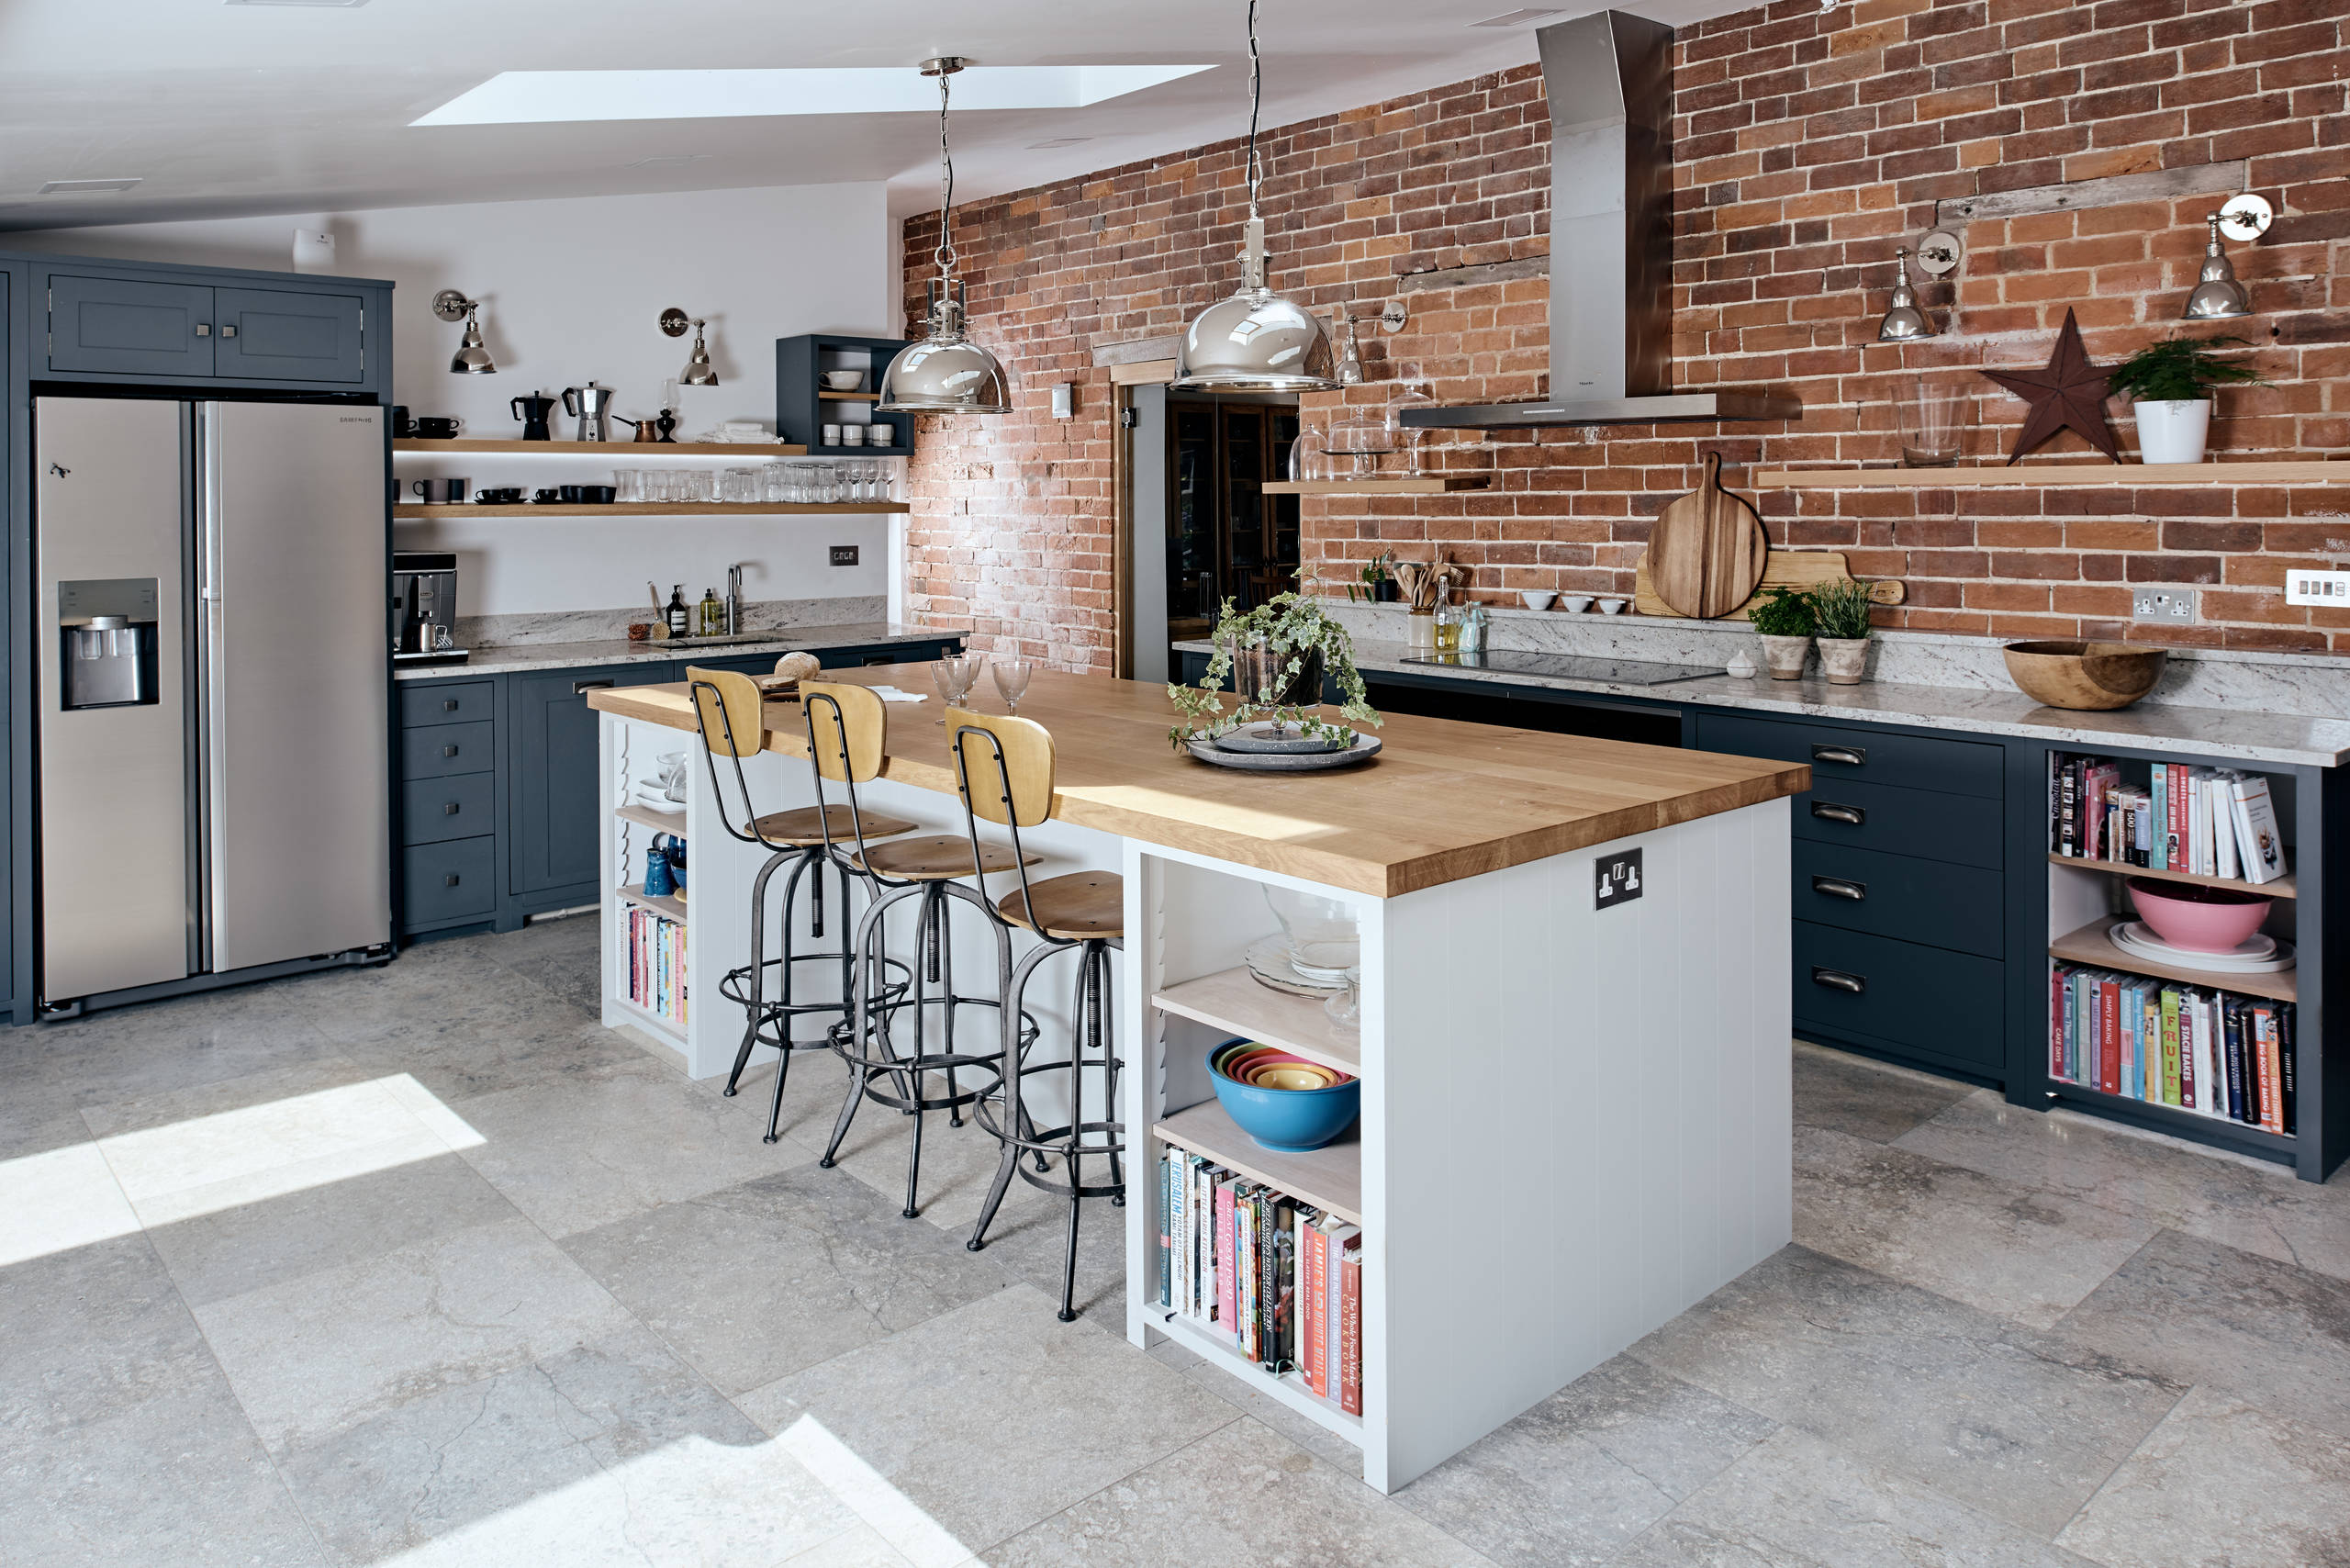 modern kitchen tiles design in India, Horoscope Today: The kitchen style that best suits you, based on your Zodiac sign